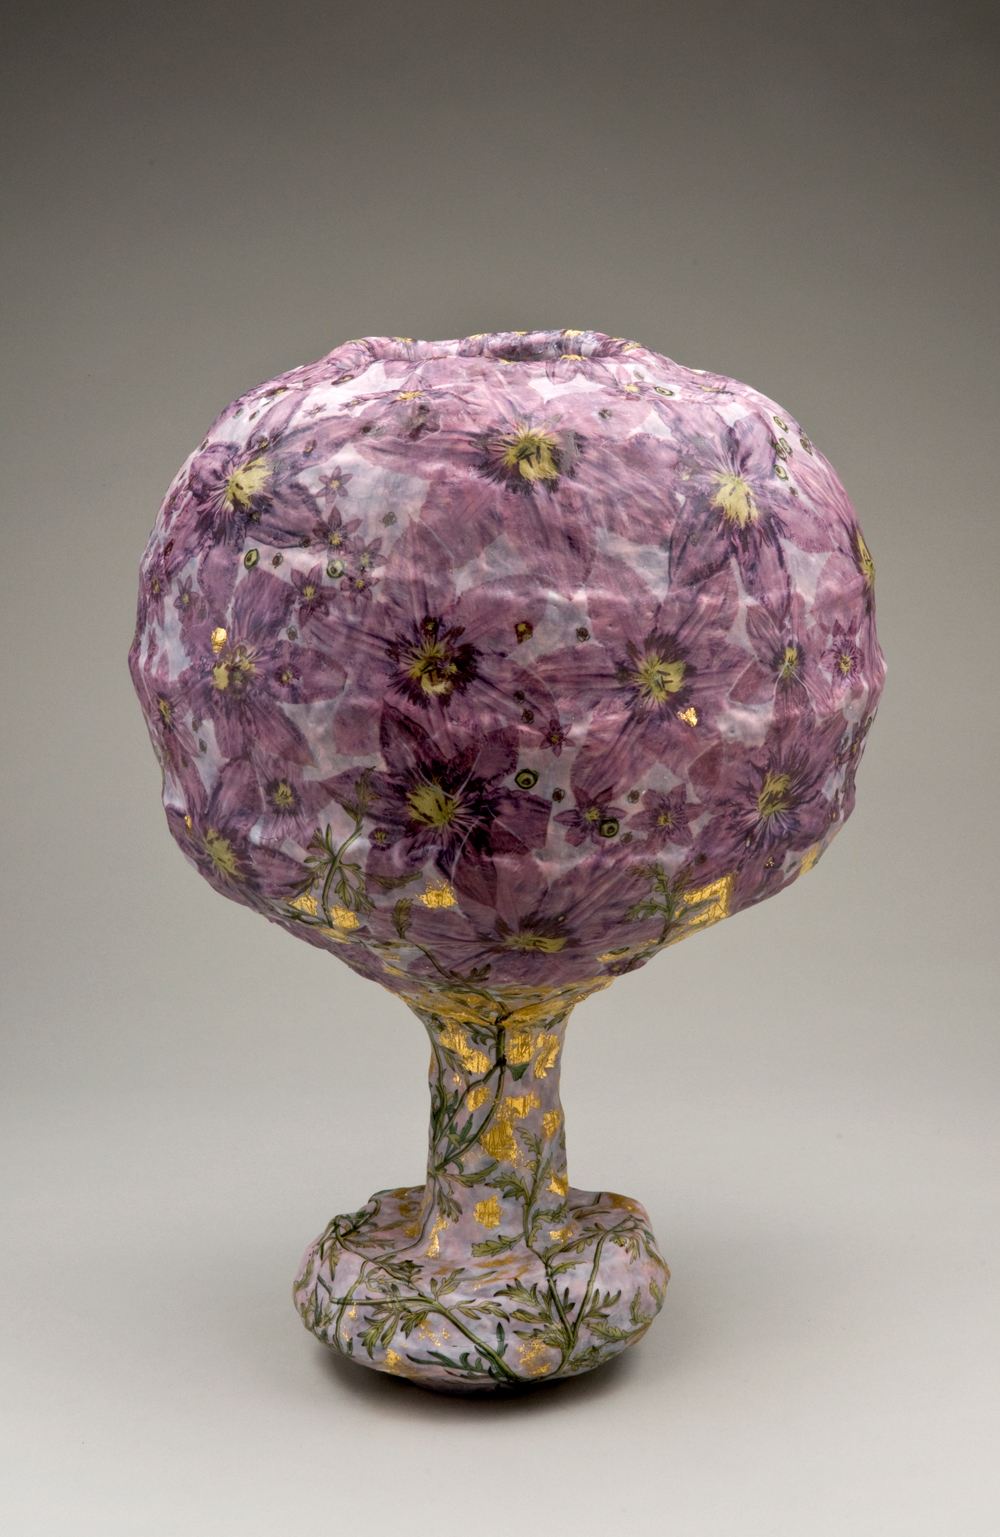 Large Vase Sculpture with Purple Clematis